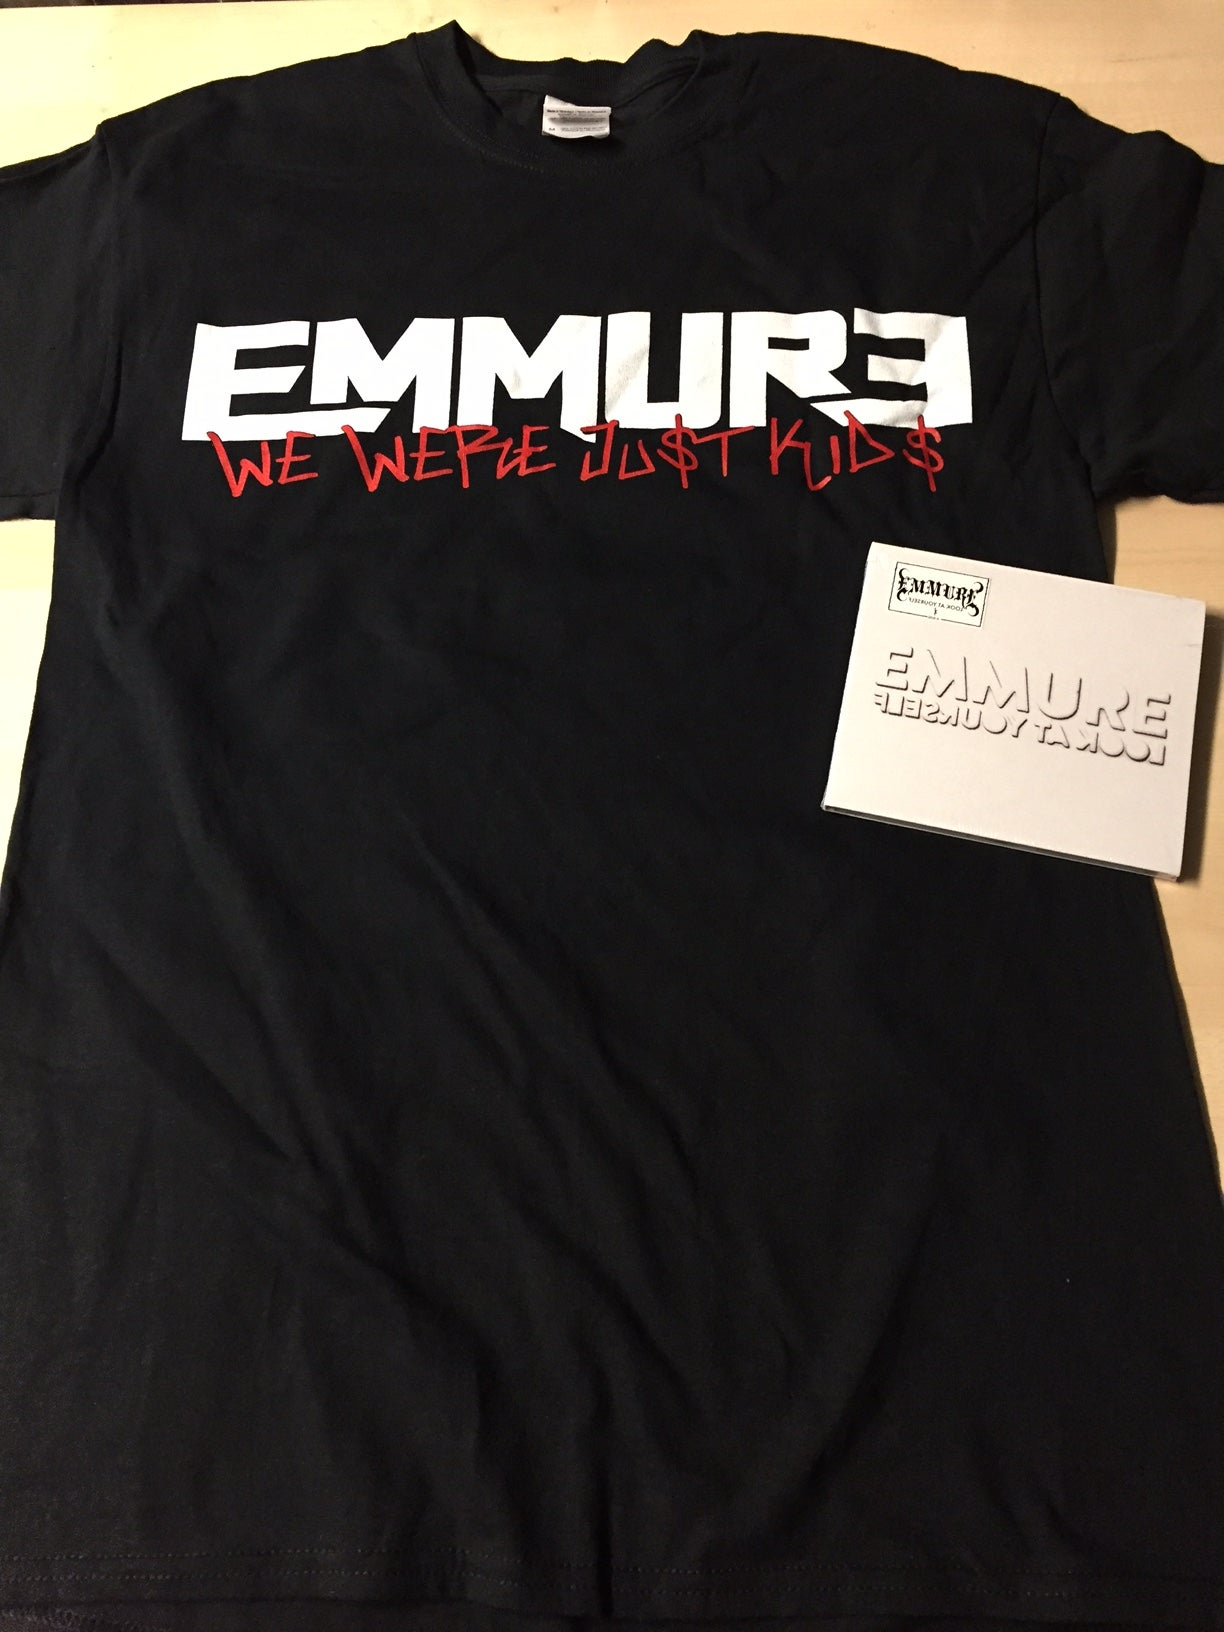 Image of EMMURE - LOOK AT YOURSELF - NEW CD/SHIRT COMBO DEAL #6 SIZE S, M, L & XL